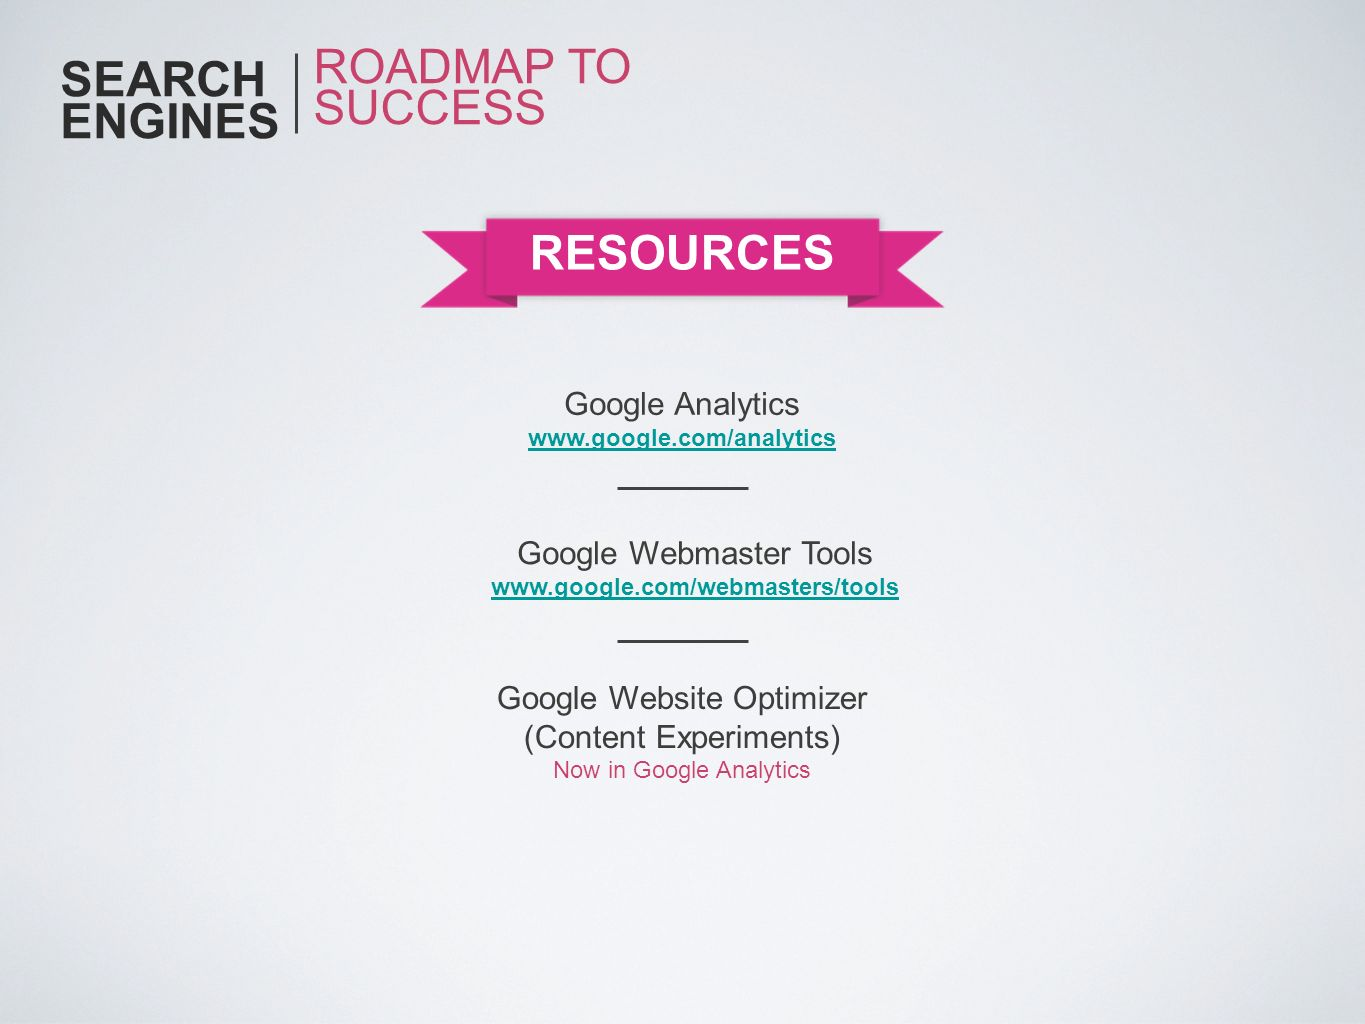 SEARCH ENGINES ROADMAP TO SUCCESS RESOURCES Google Analytics